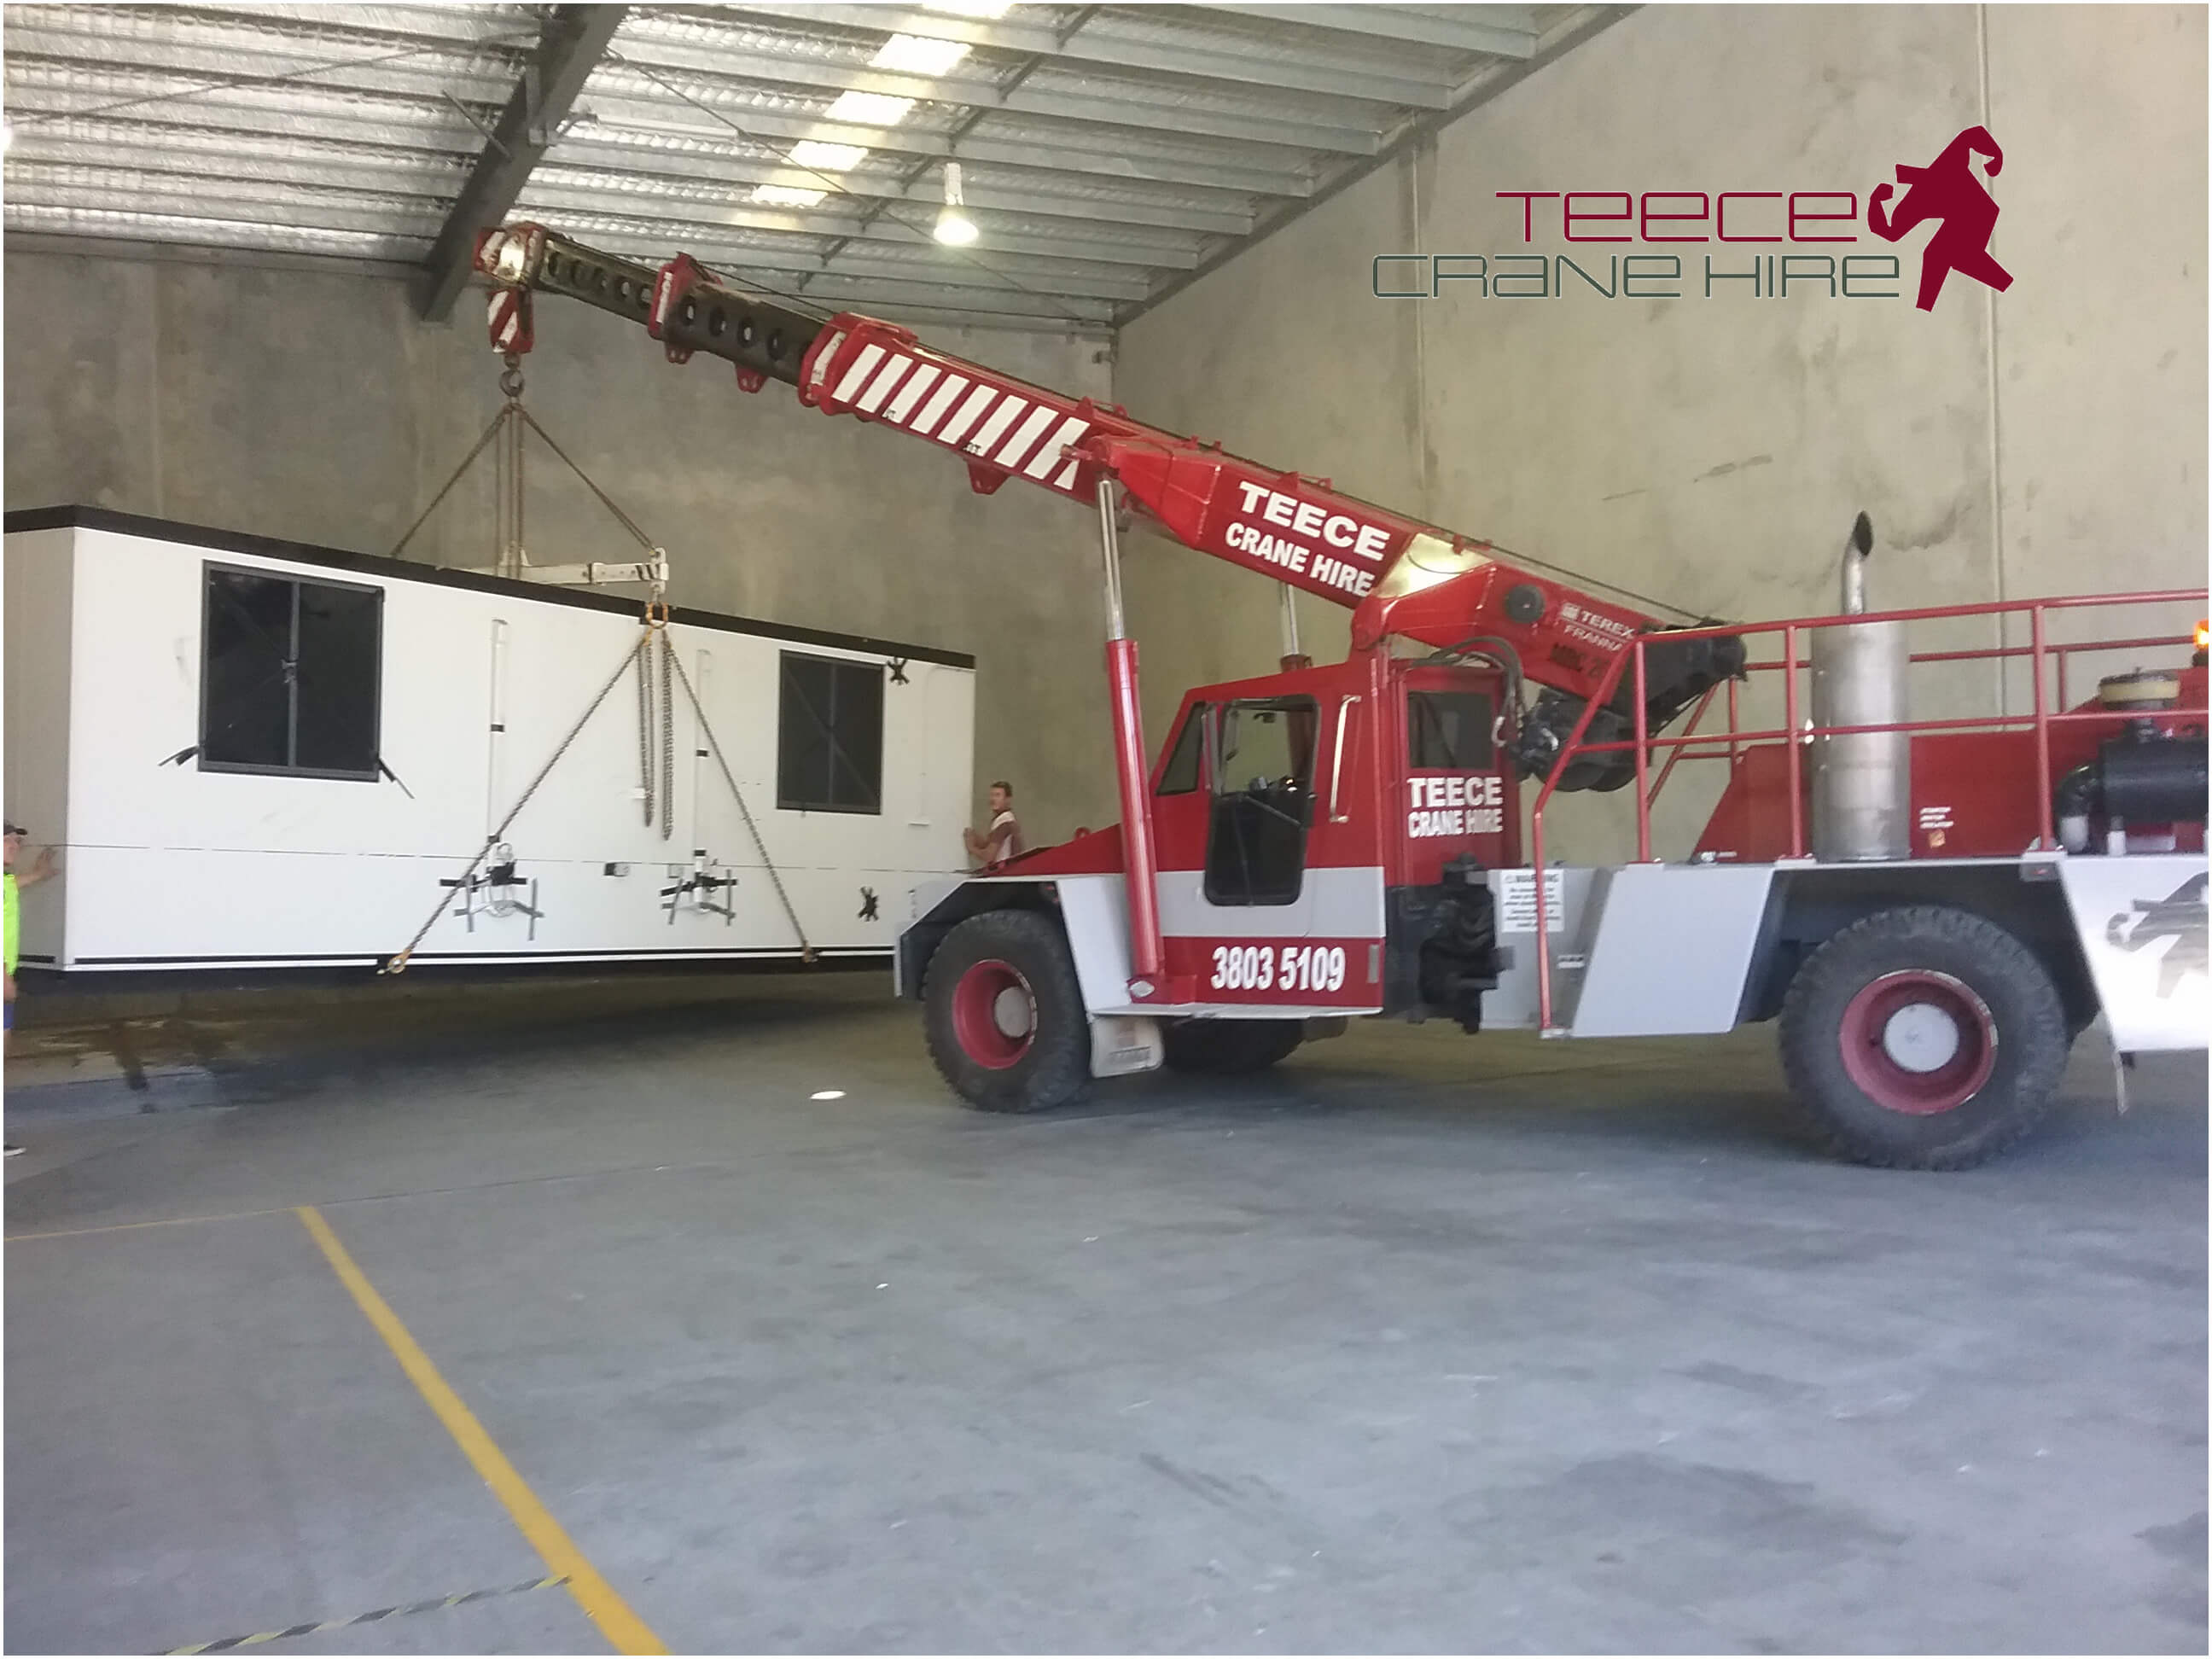 Teece Crane Hire - lifting demountable